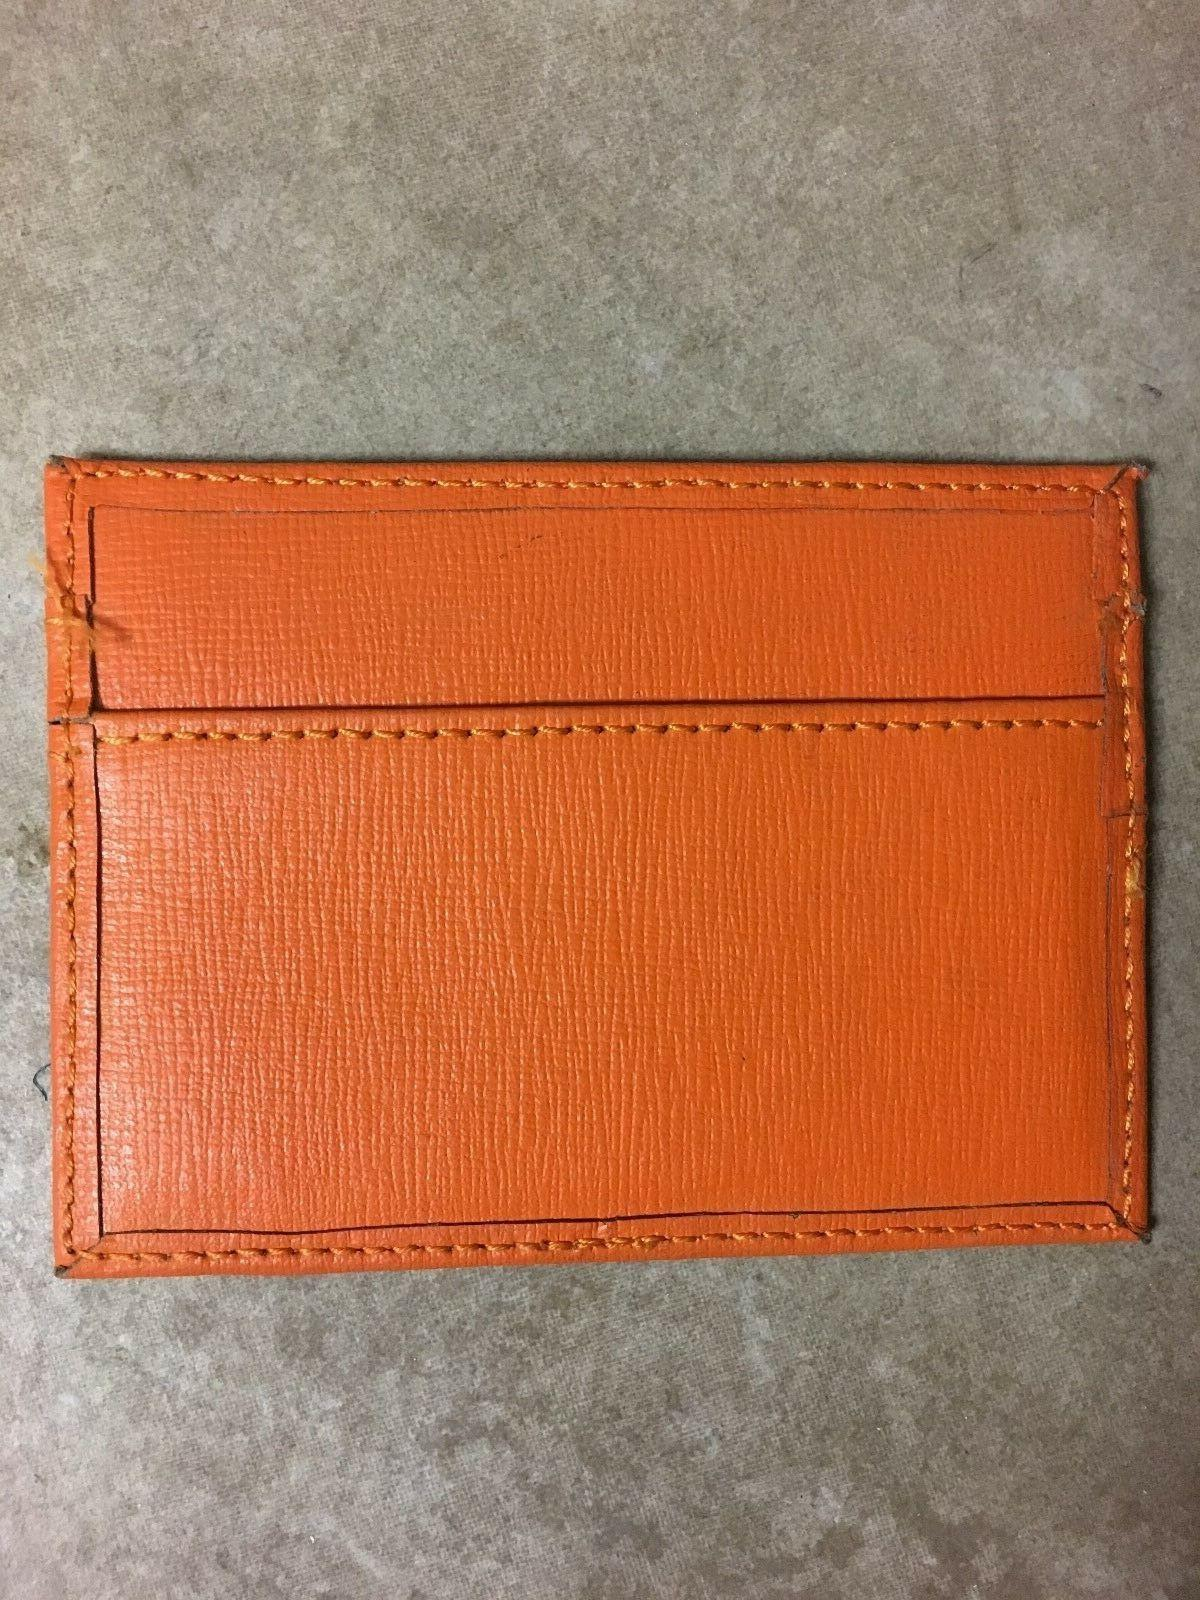 Credit Card Holder Orange Color- Thin not bulky